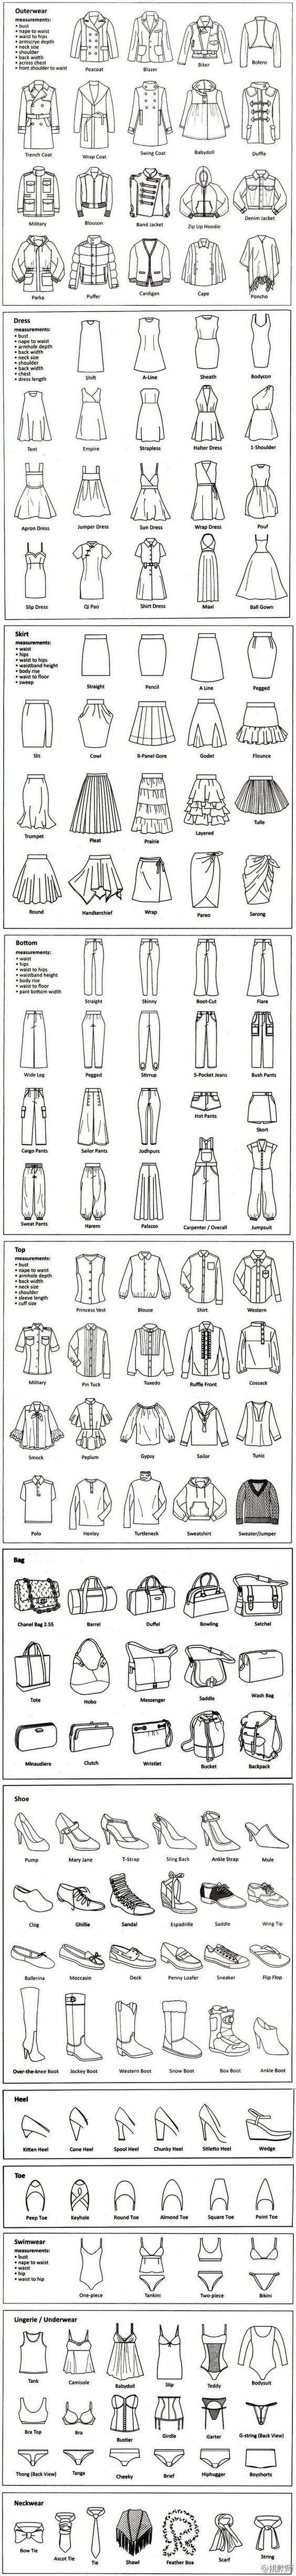 What Every Girl Wants As A Reference - Tailoring & Shoe Sizr Charts, Fashion Crossdresser Sissy, Feminization,Sissy Fashion